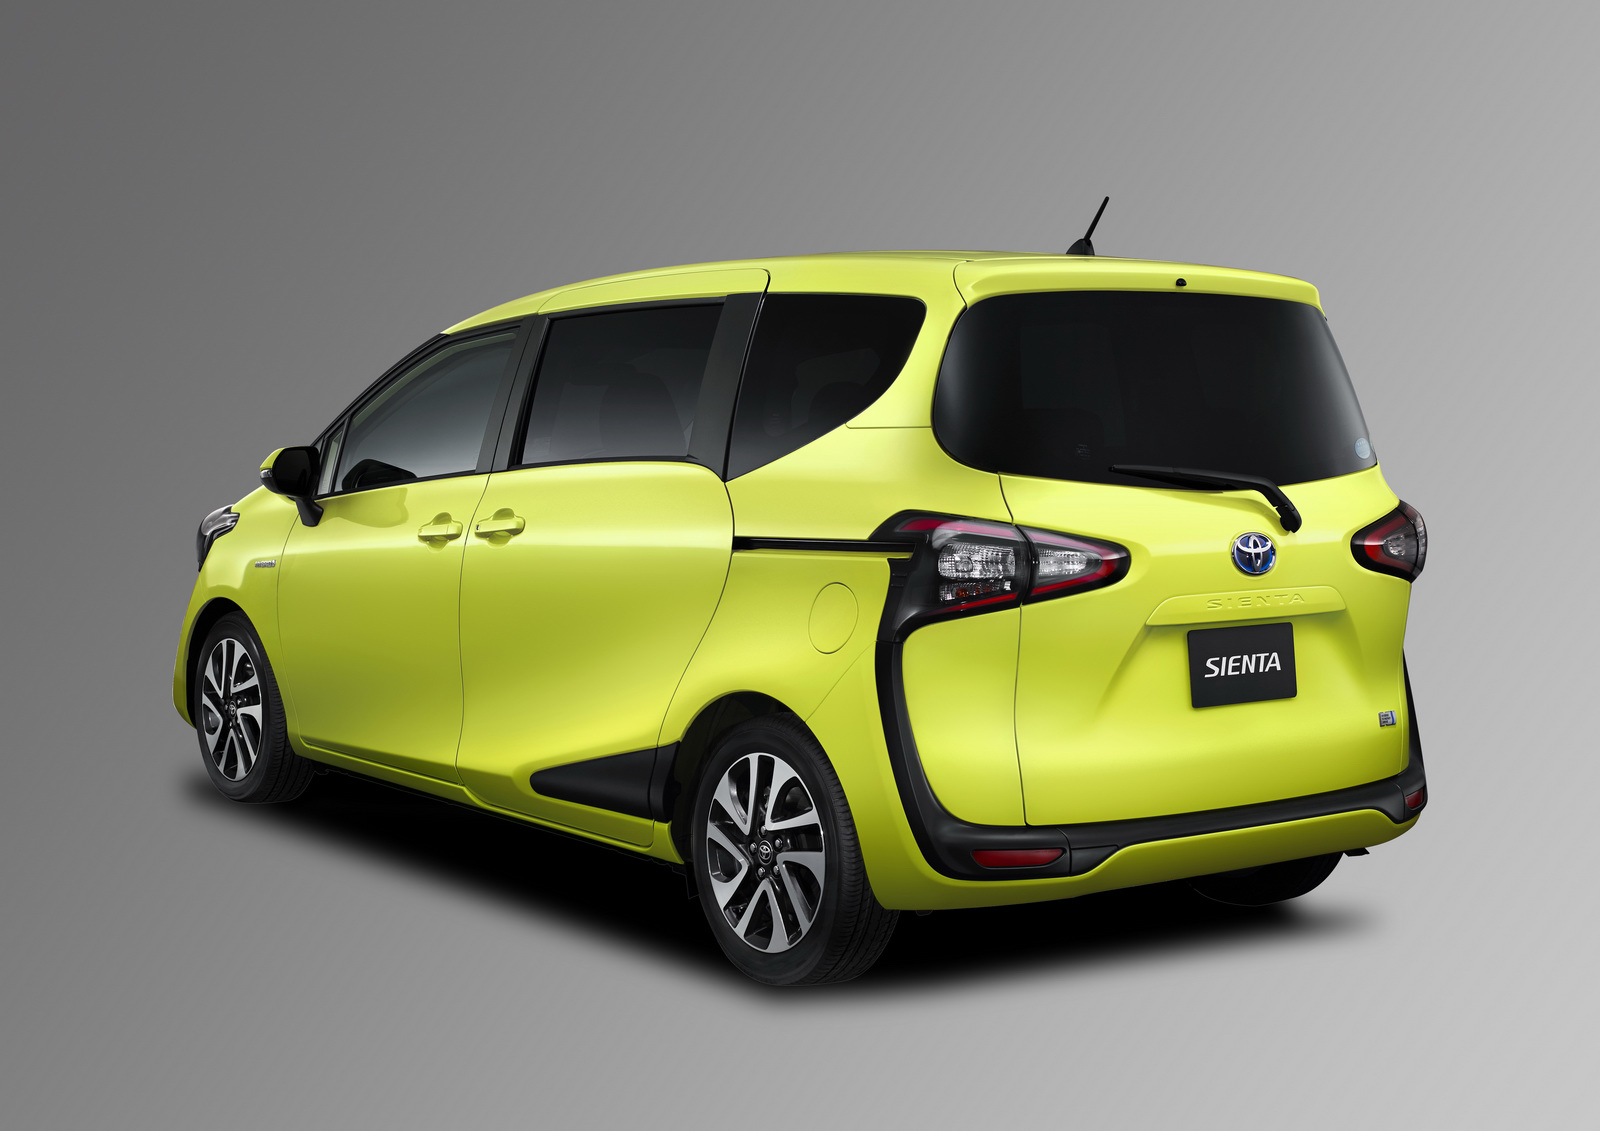 Toyota Sienta I Restyling 2 2011 - 2015 Compact MPV #7